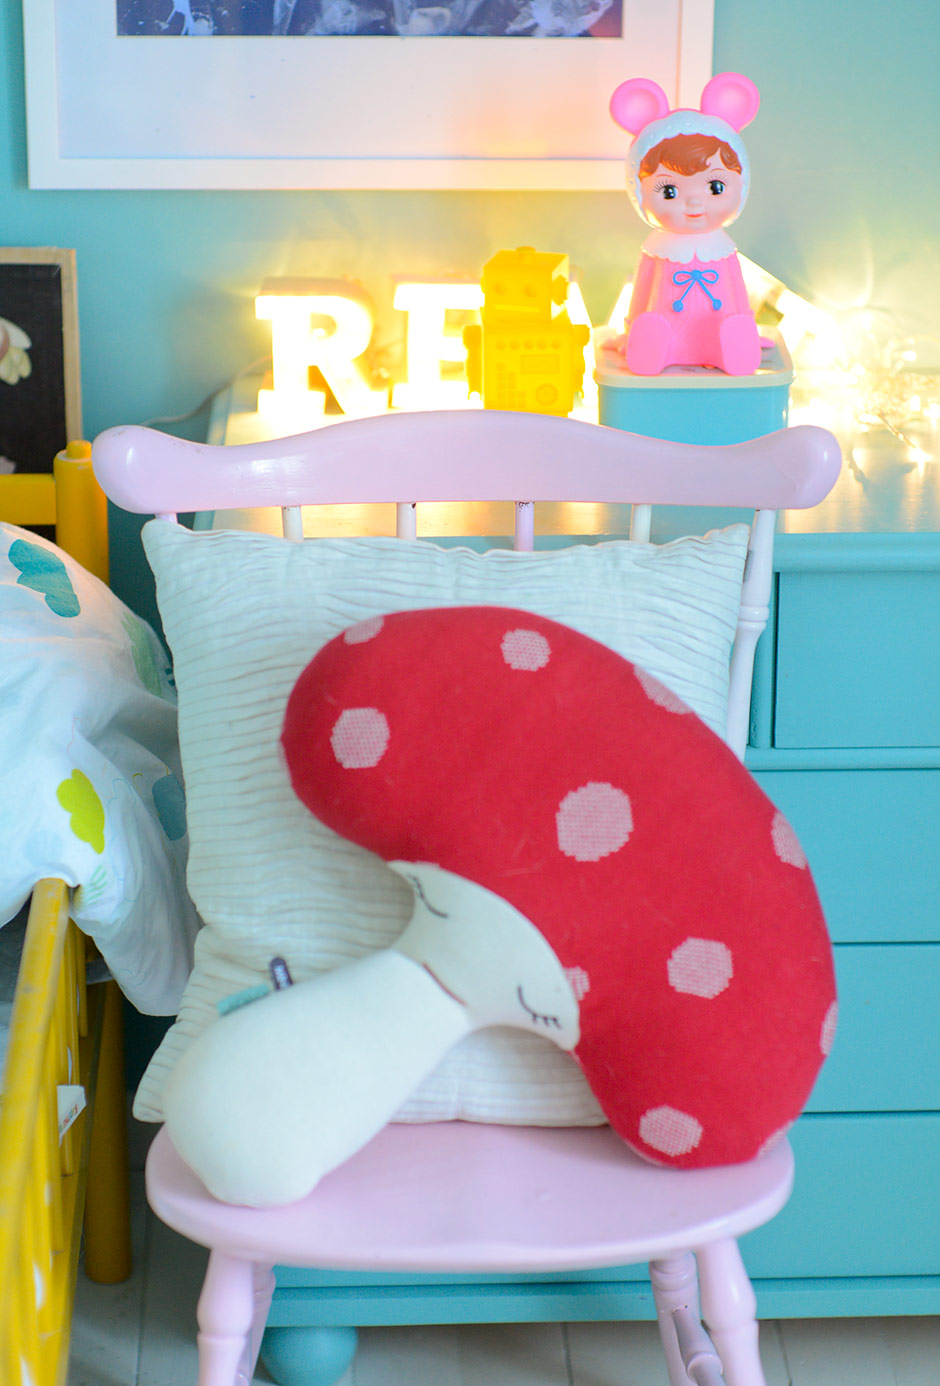 Cute OYOY mushroom cushion and Lapin & Me Woodland doll